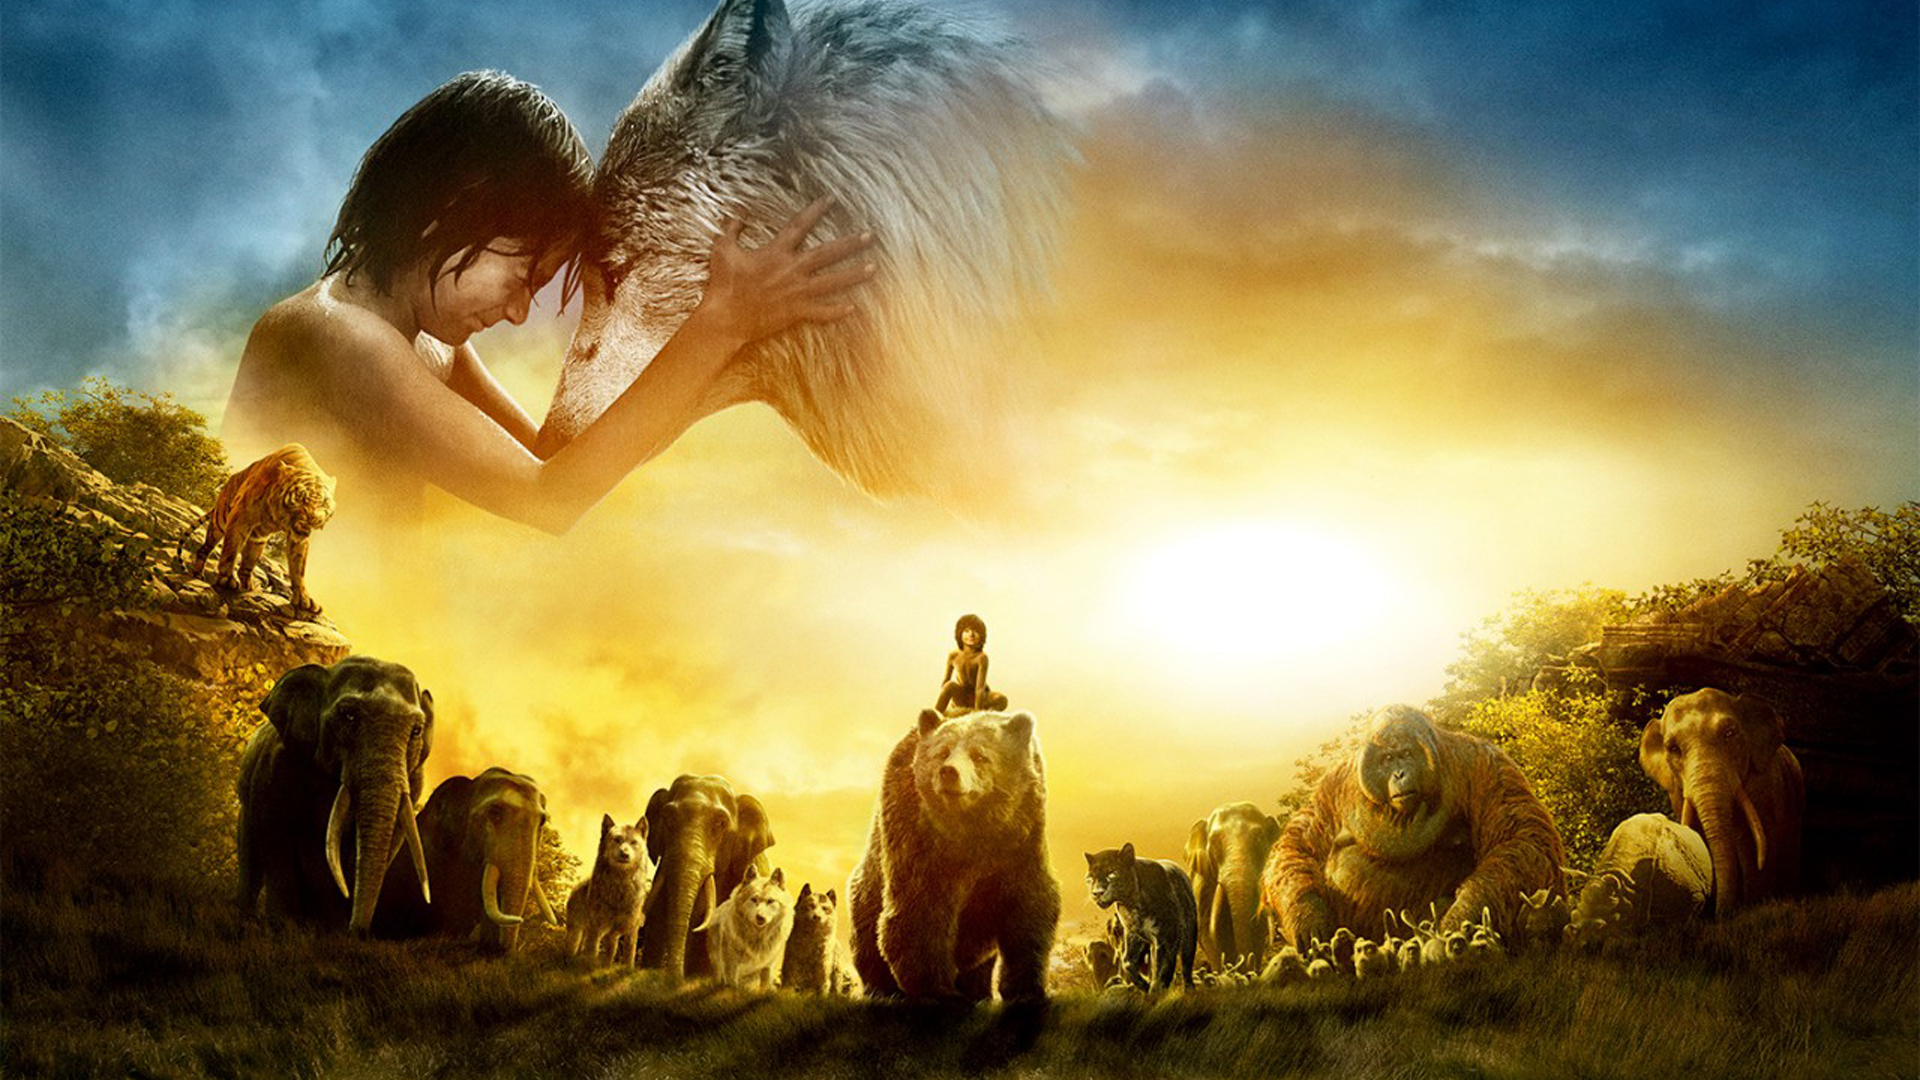 The Jungle Book Wallpapers High Quality | Download Free